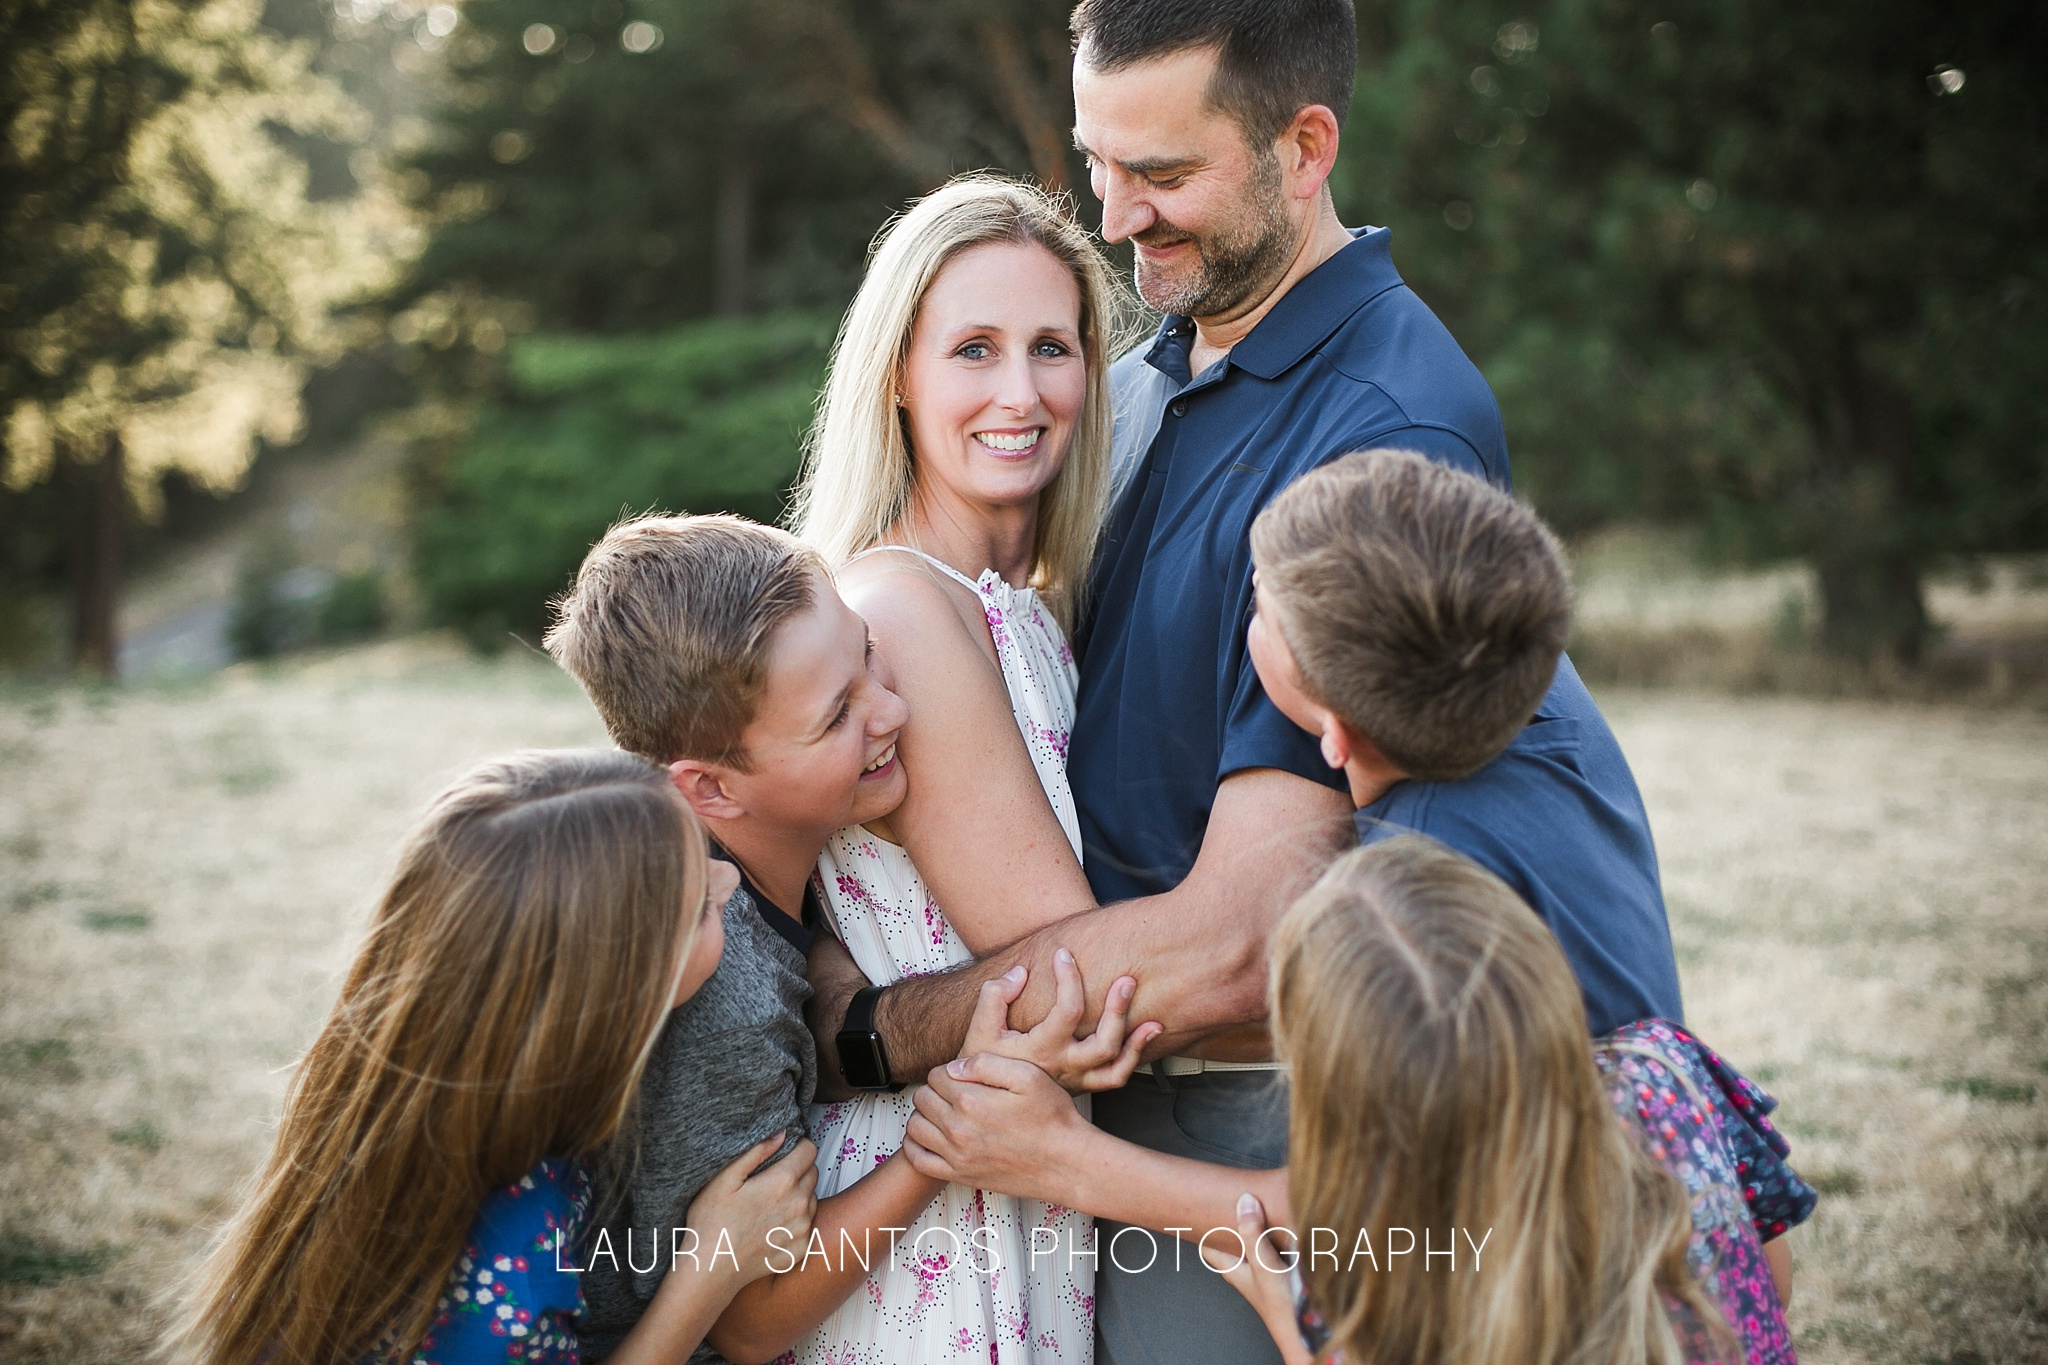 Laura Santos Photography Portland Oregon Family Photographer_0141.jpg